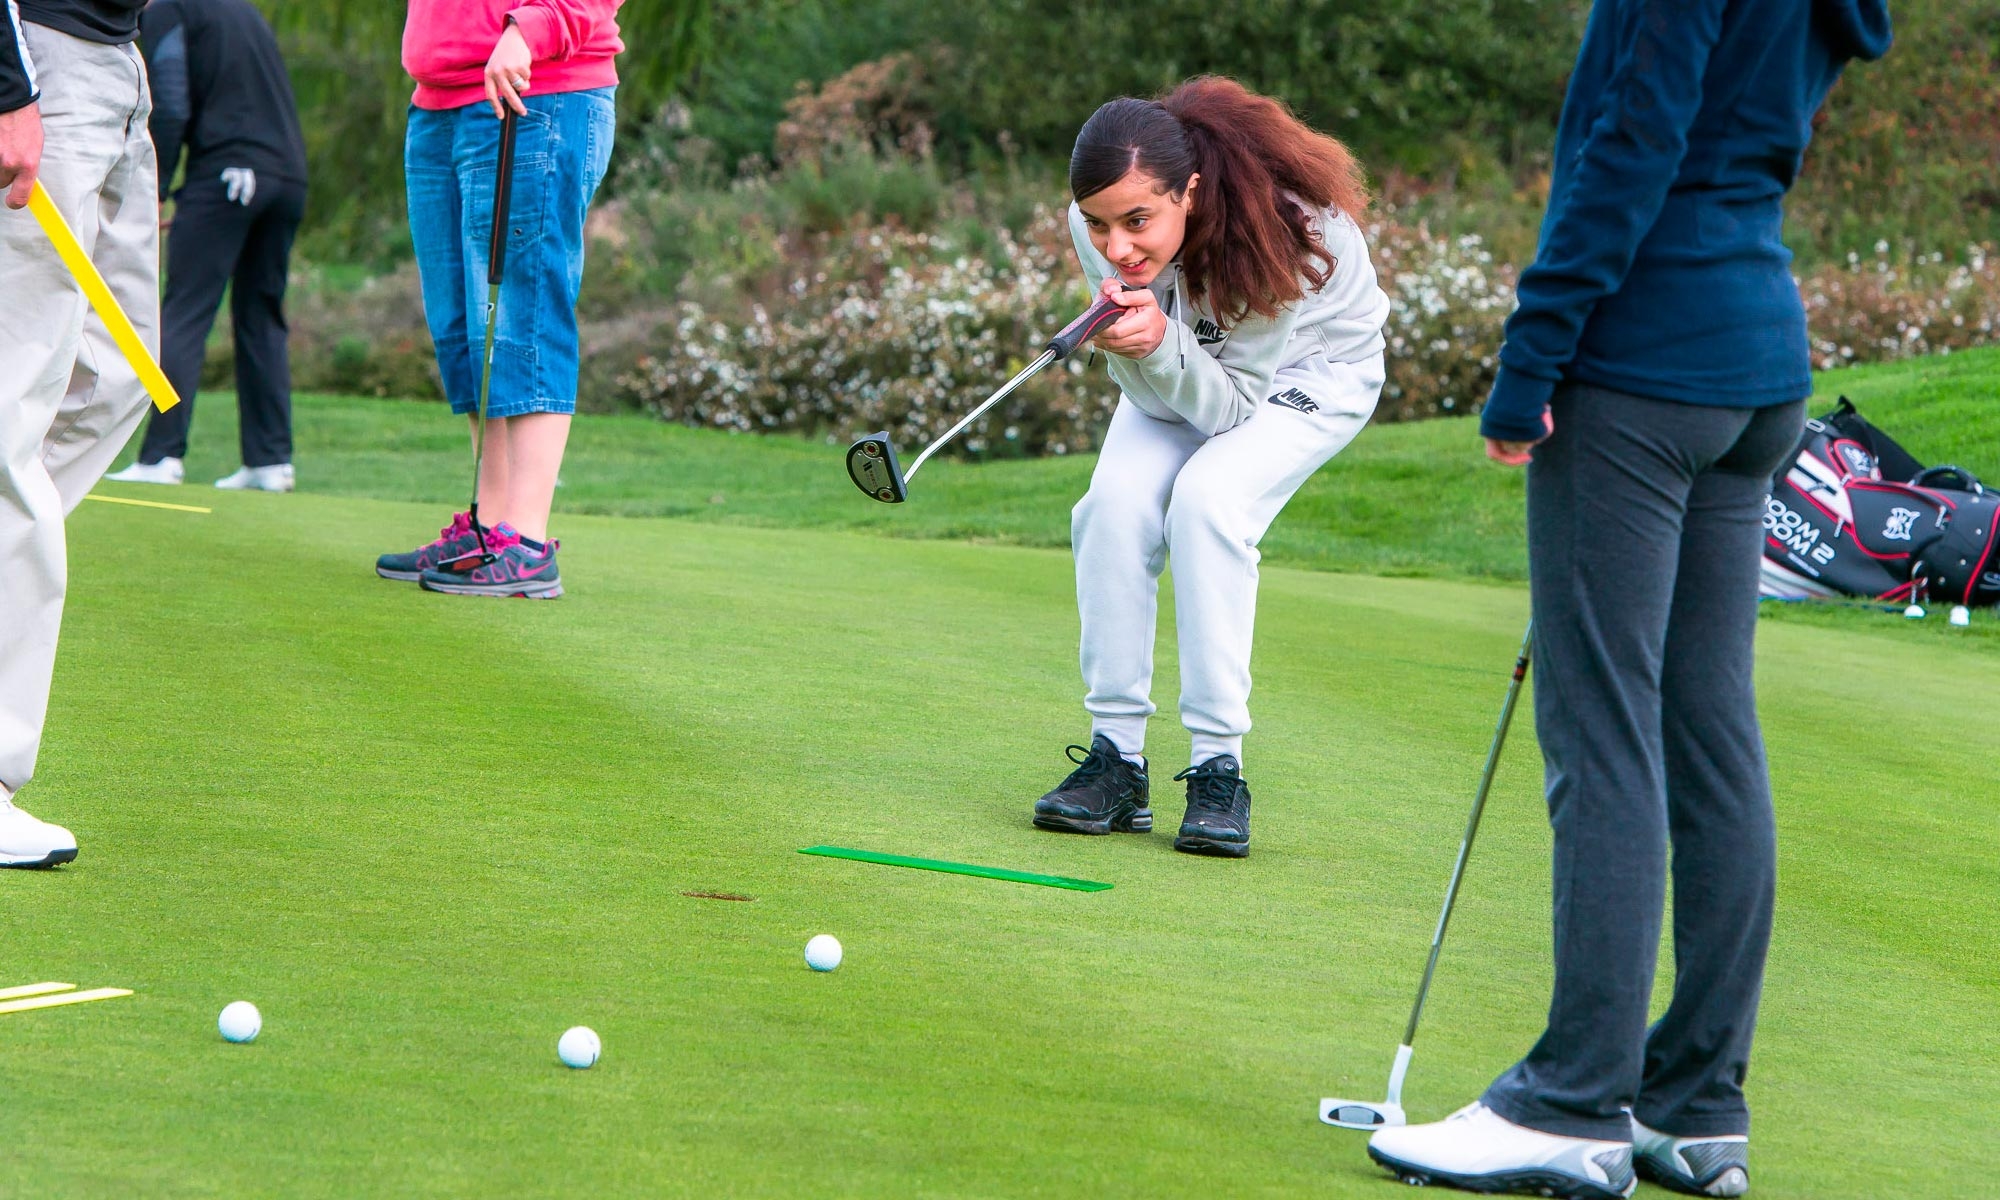 Putting green at The Shire London